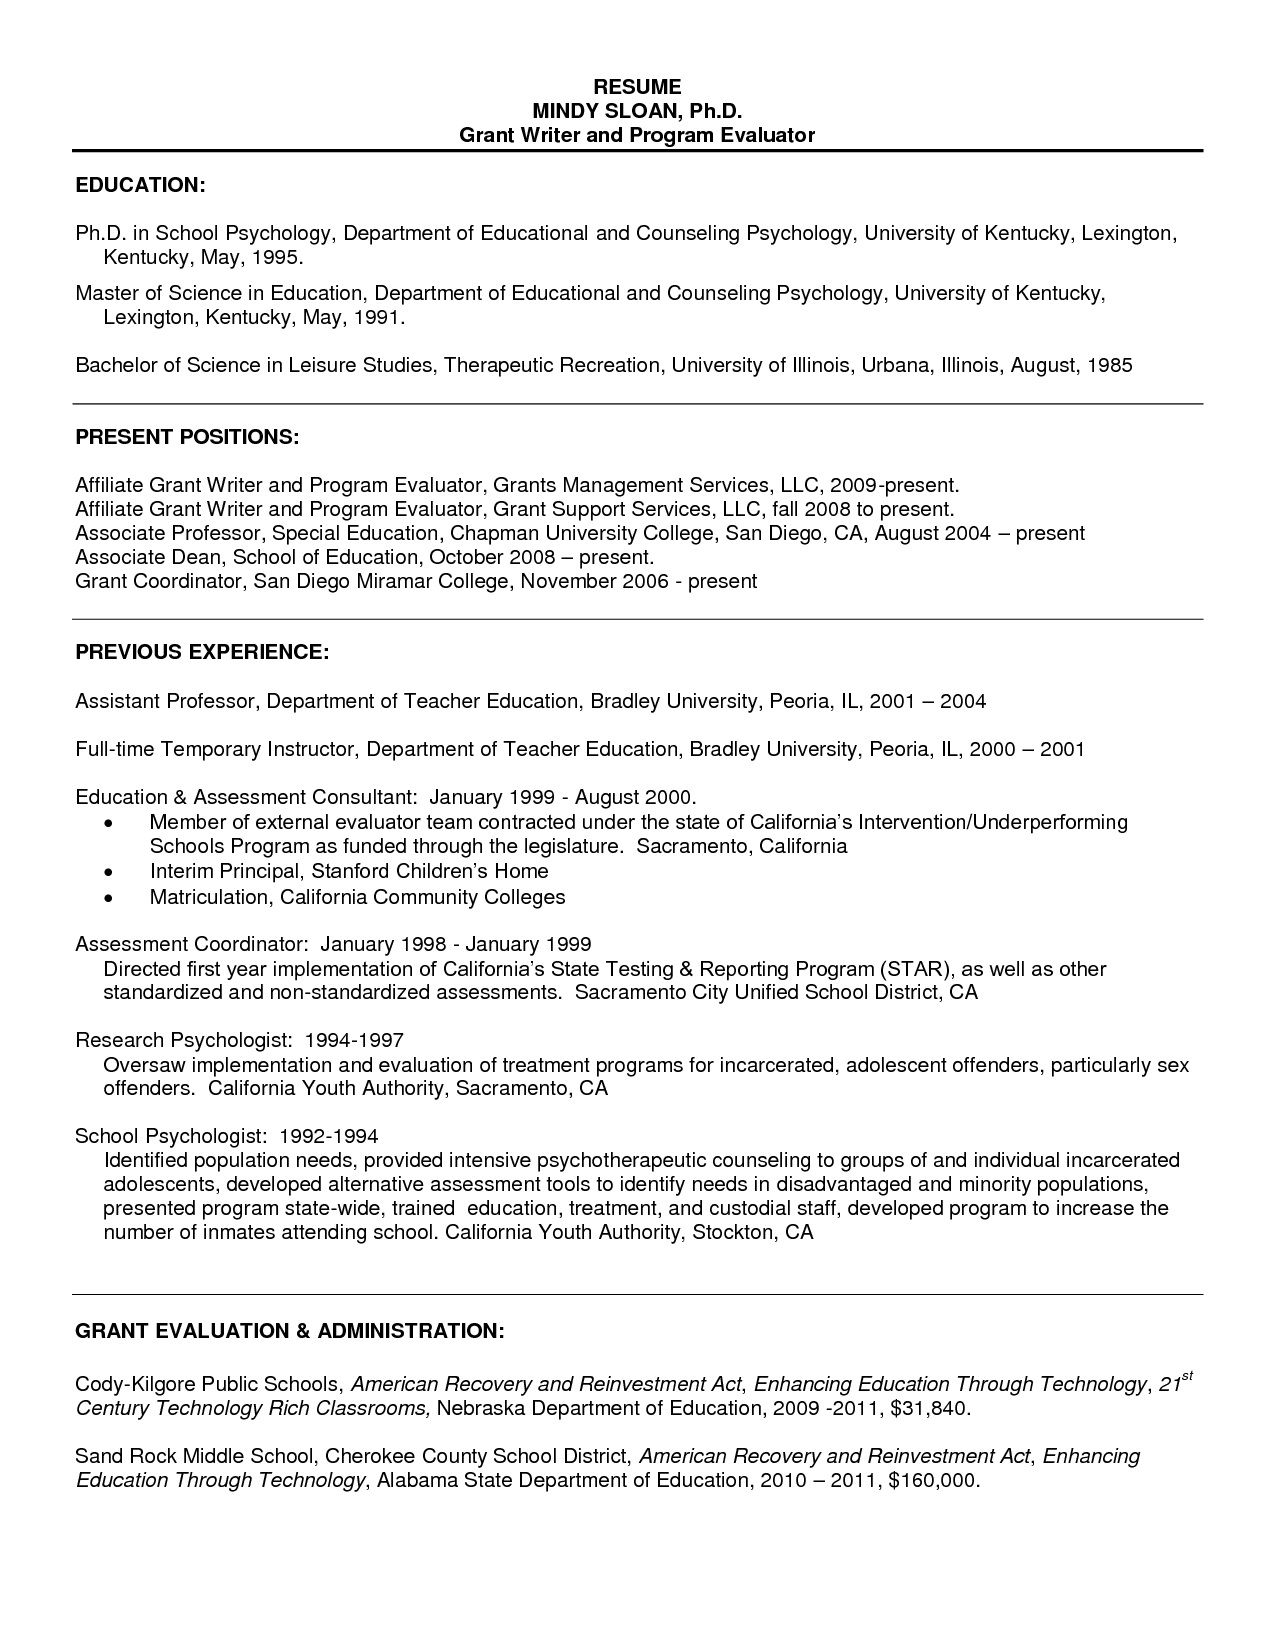 Graduate School Resume Sample Resume For Psychology Graduate Http